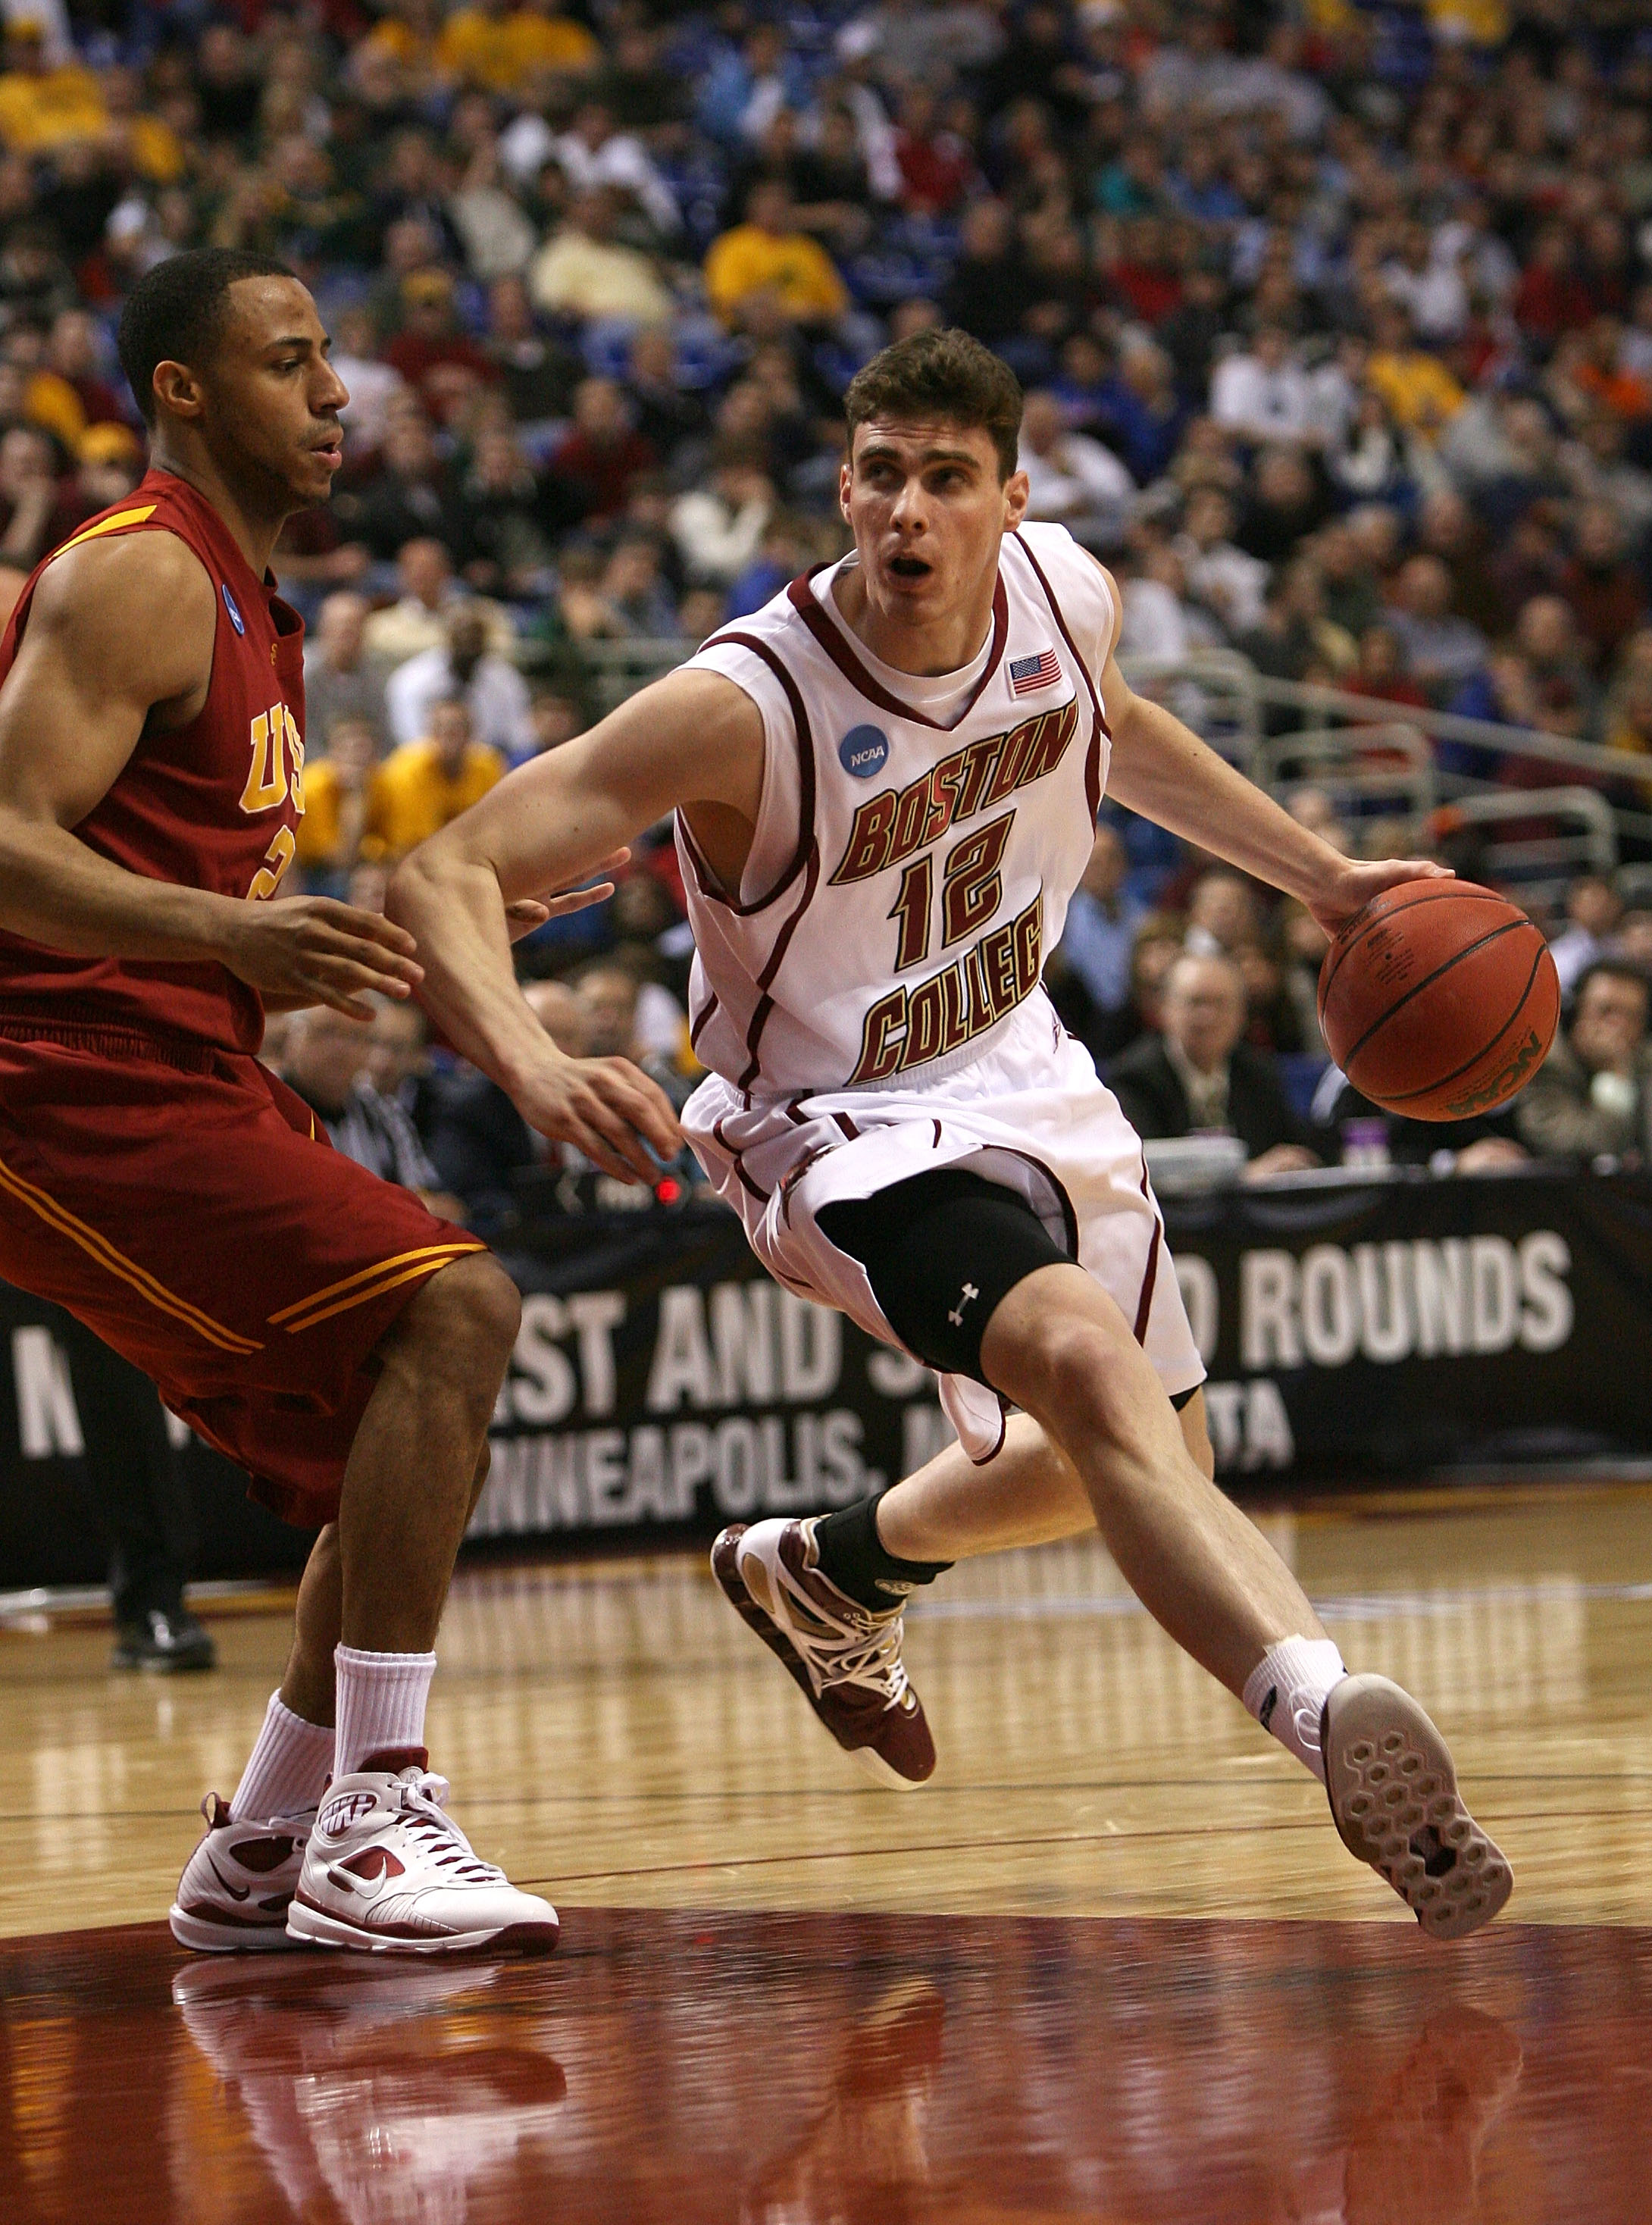 MINNEAPOLIS - MARCH 20:  Joe Trapani #12 of the Boston College Eagles drives against Dwight Lewis #21 of the USC Trojans during the first round of the NCAA Division I Men's Basketball Tournament at the Hubert H. Humphrey Metrodome on March 20, 2009 in Min